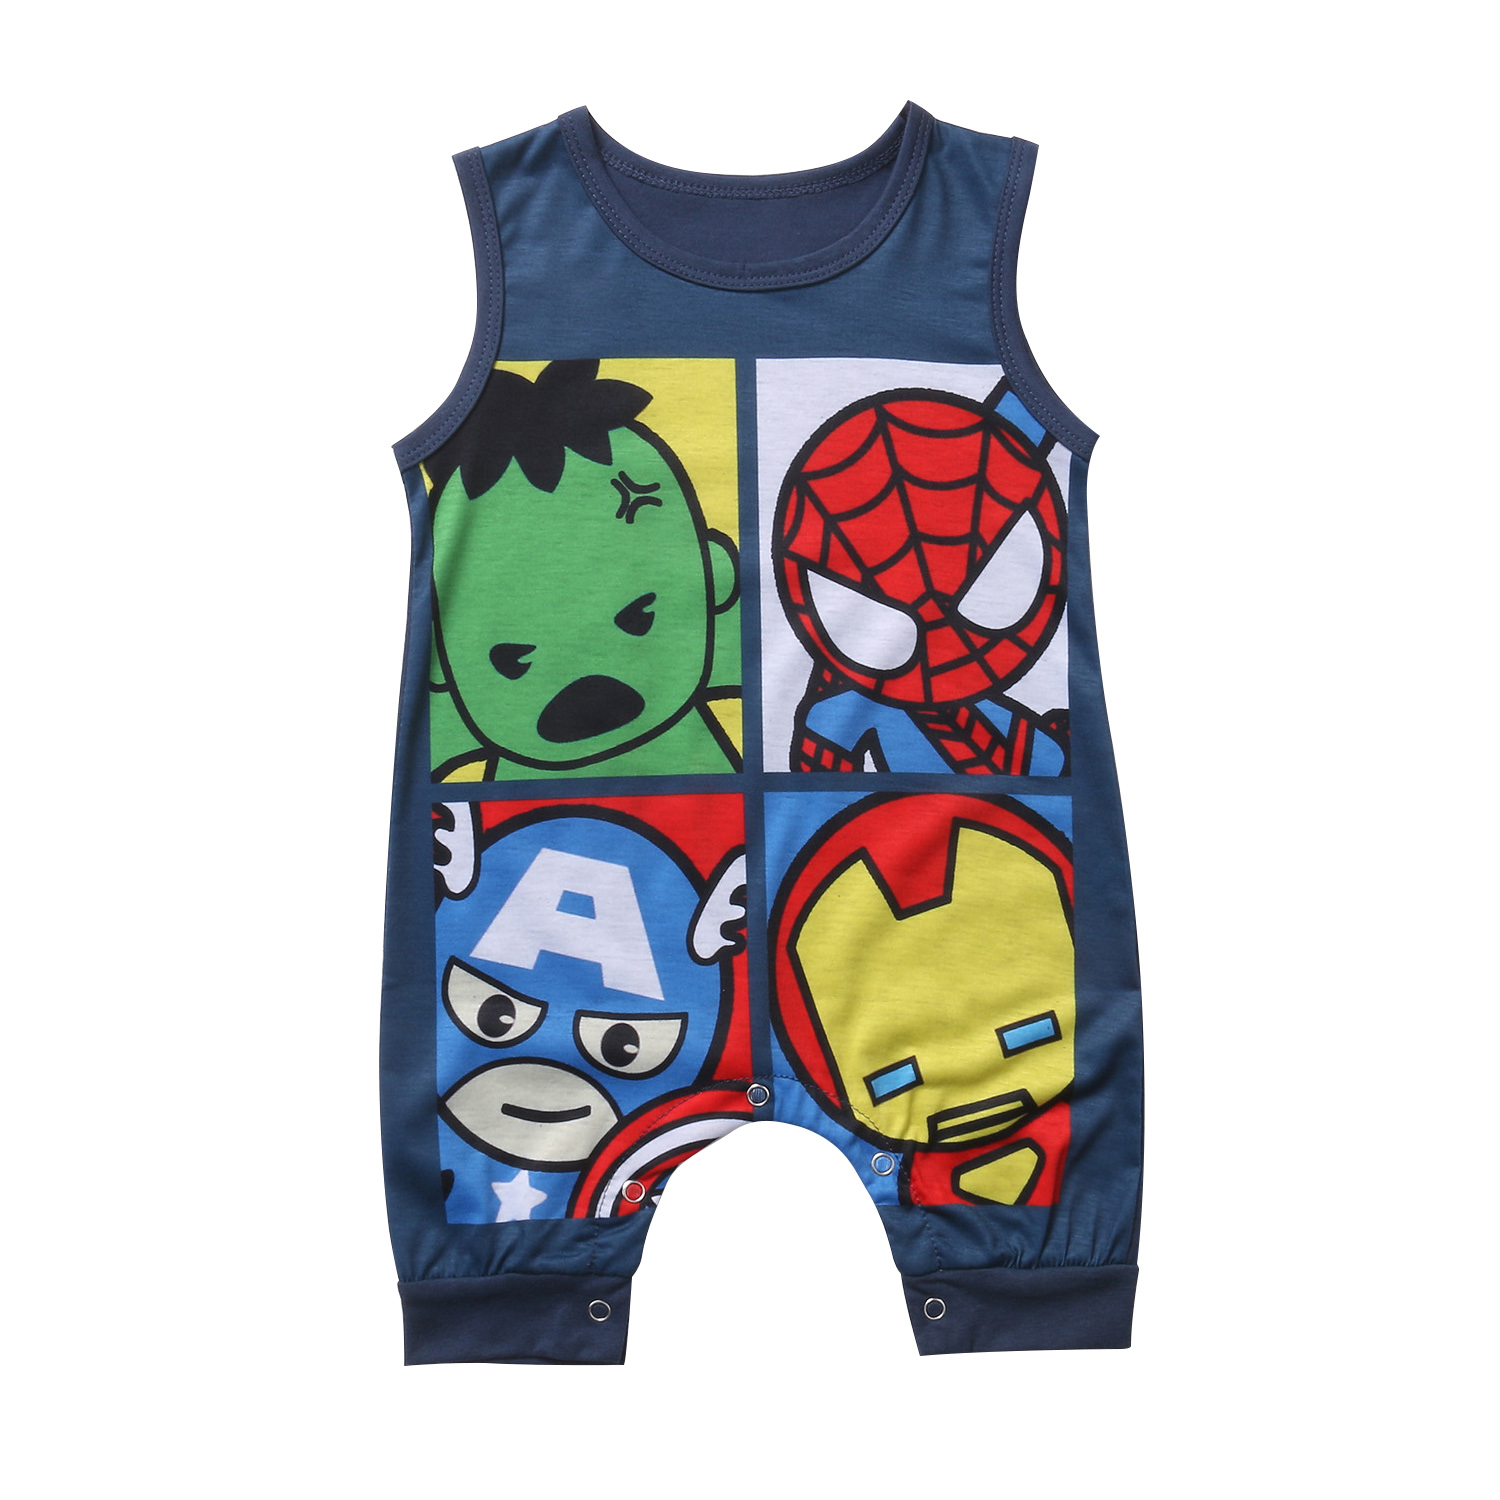 Pudcoco Romper Newborn Jumpsuit Hulk Infant Baby Baby-Boy-Girl Super-Hero Outfit Cotton title=